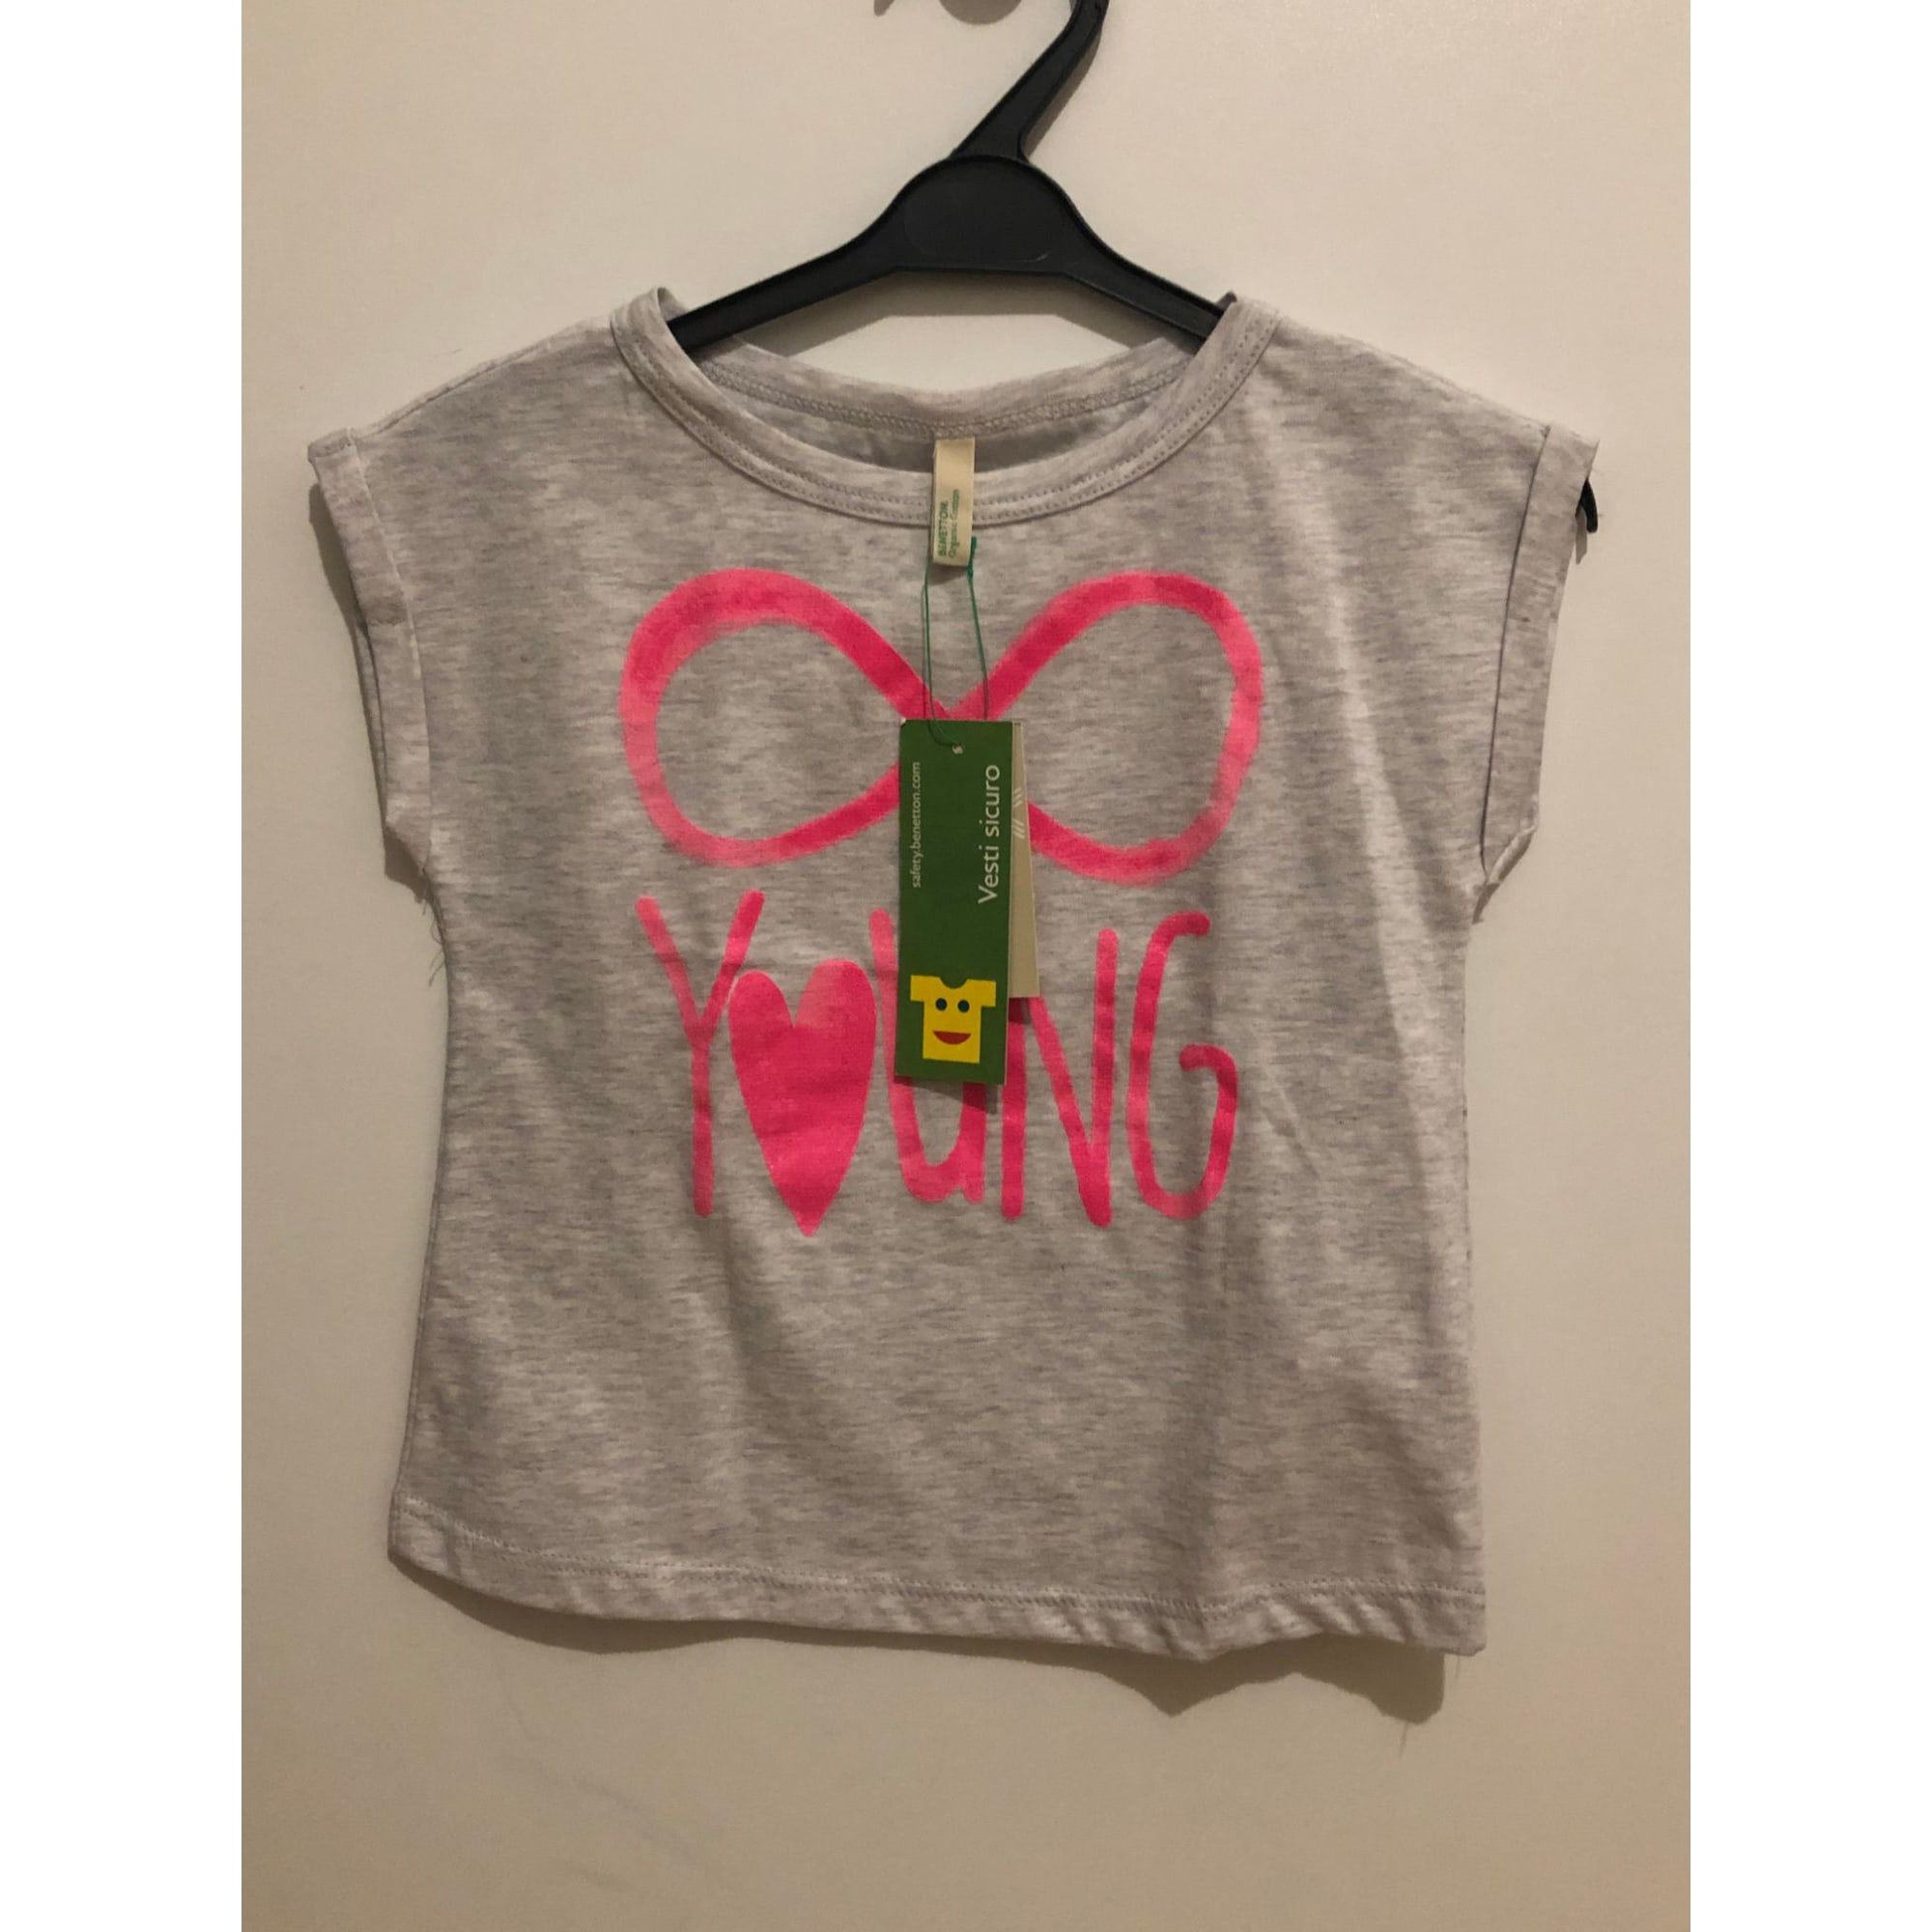 Top, tee shirt UNITED COLORS OF BENETTON Gris, anthracite